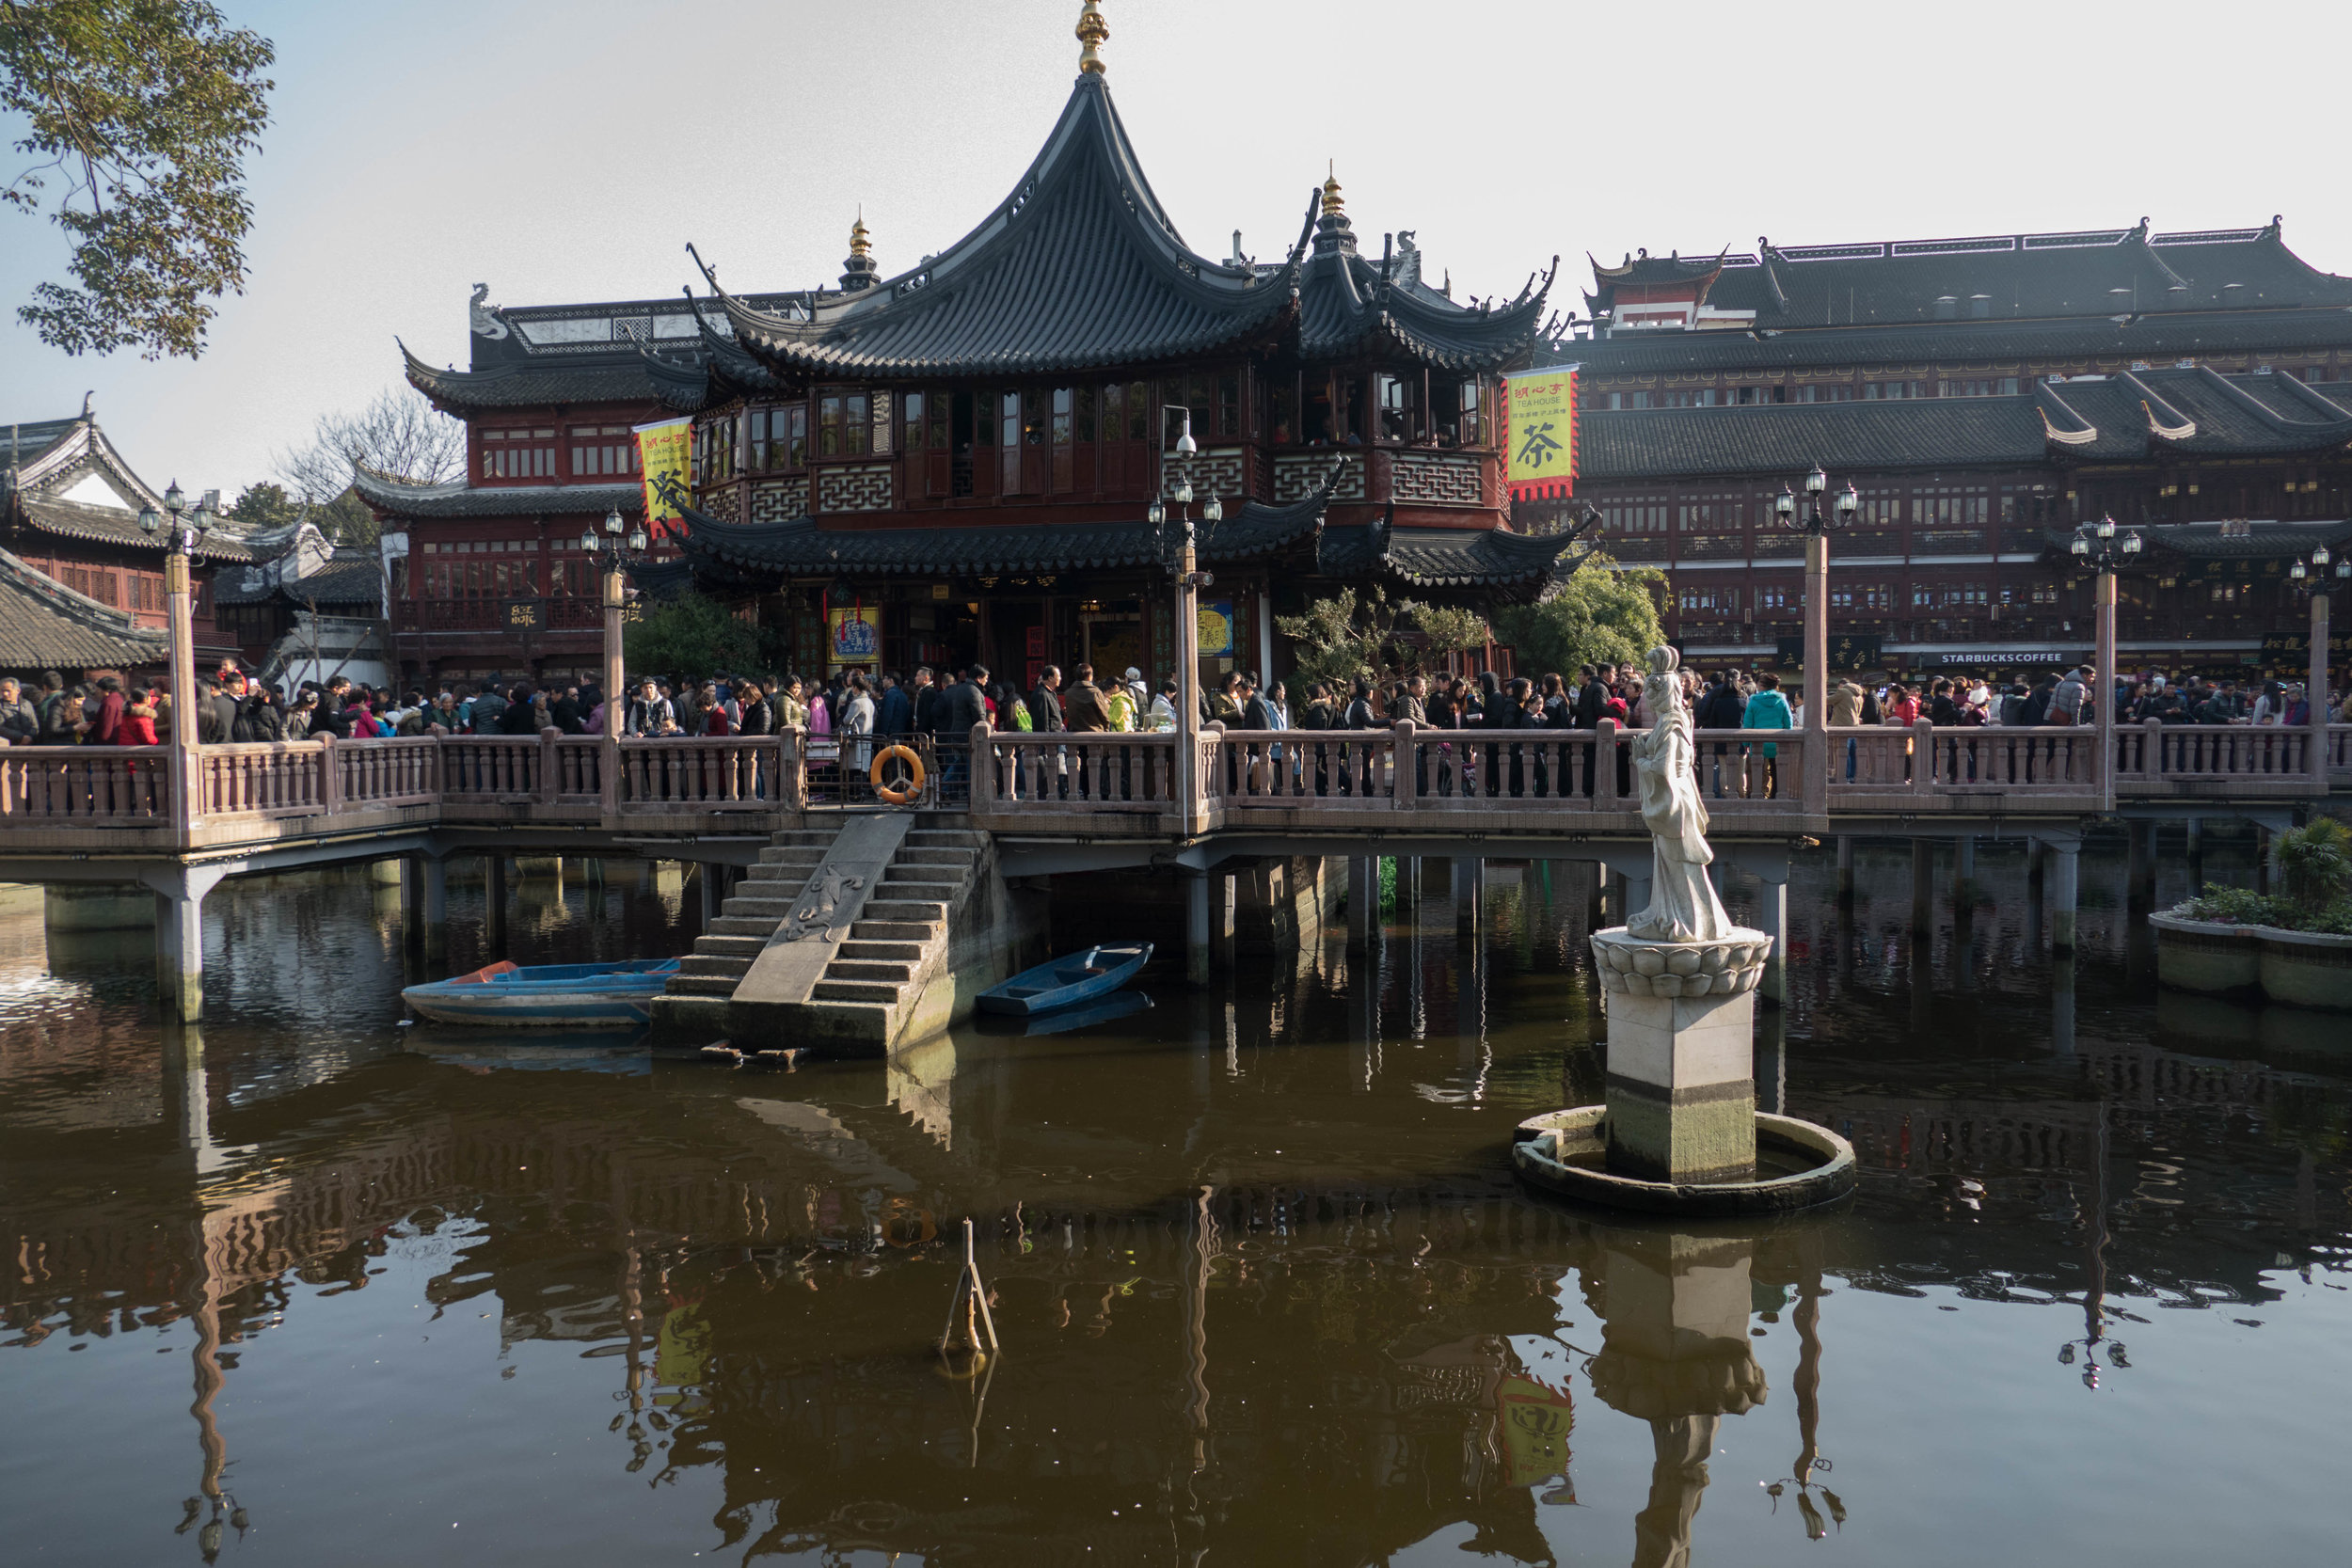 The famous tea house that sits at the entrance to Yu Yuan. The zig zag bridge is supposed to help ward off ghosts